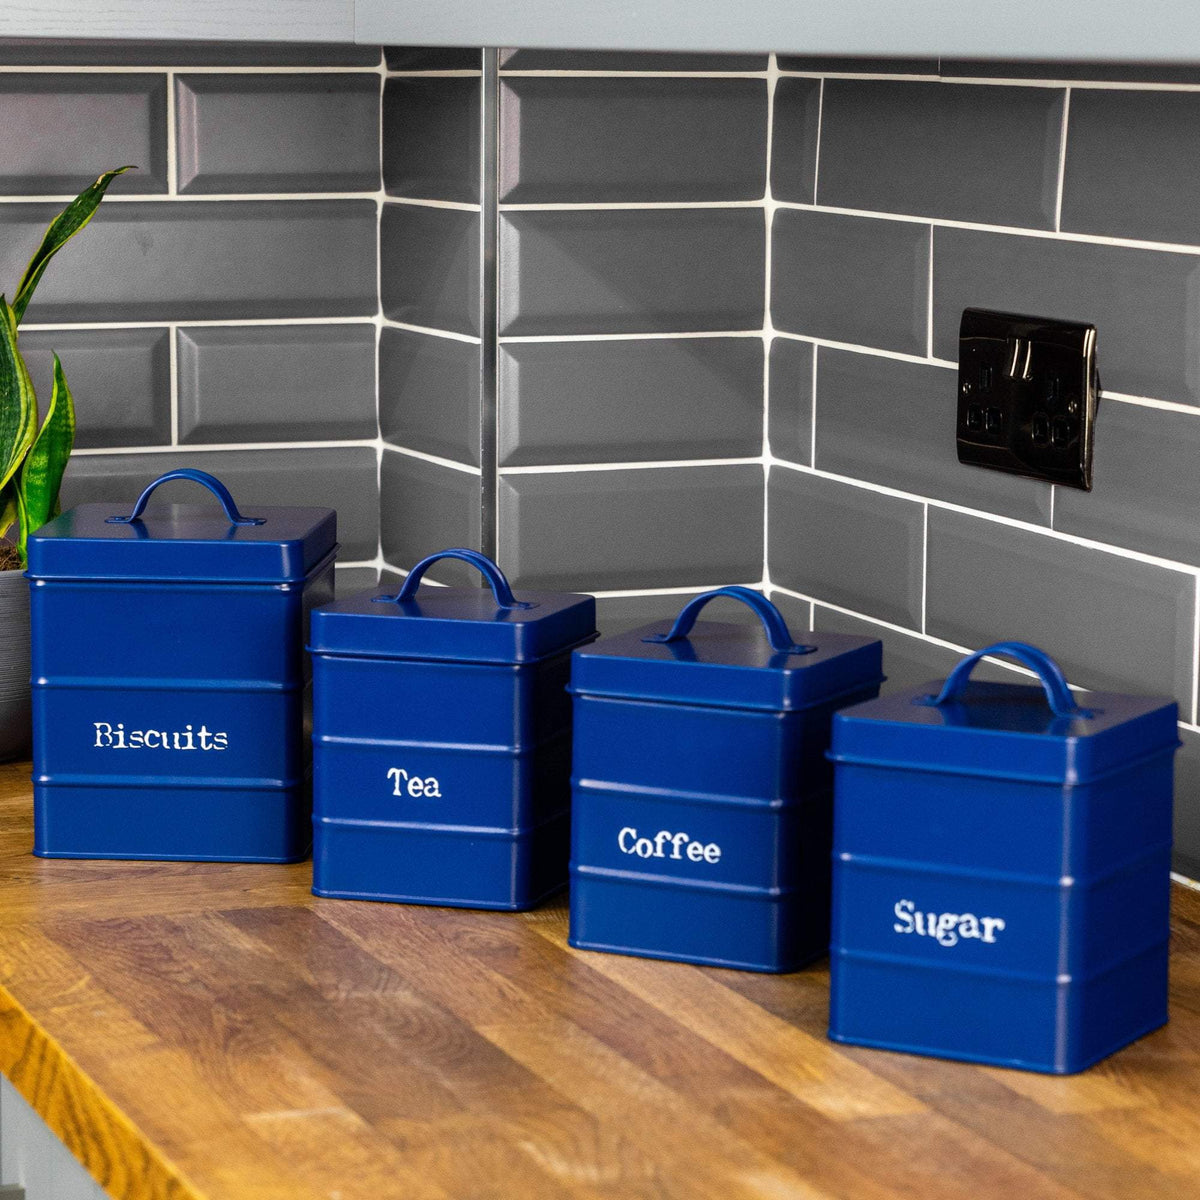 Harbour Housewares Vintage Metal Kitchen Canisters - Navy